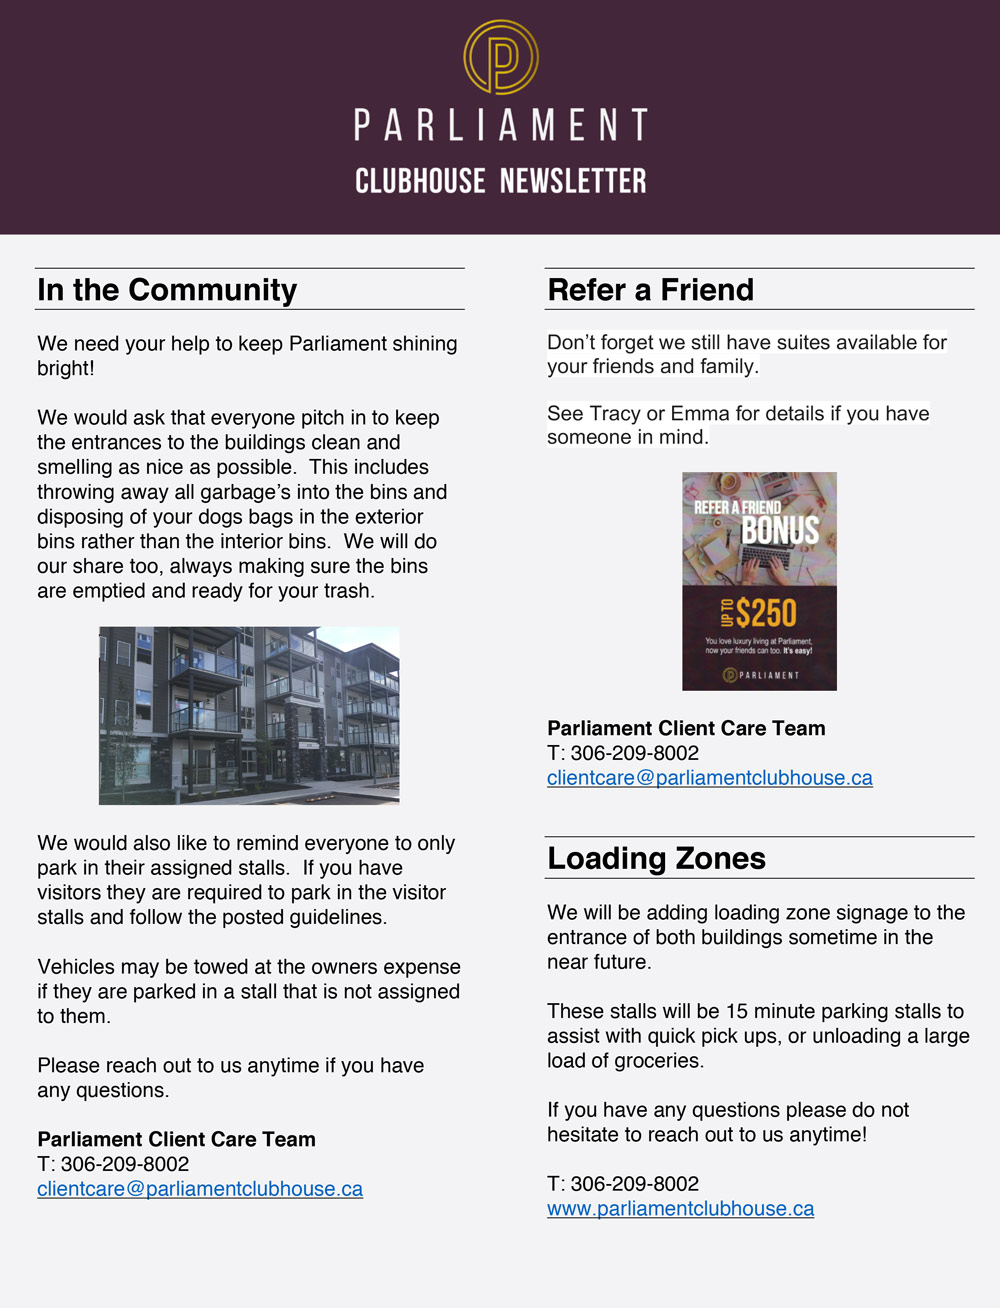 Microsoft-Word---Clubhouse-News-Pg2-October-2017.docx-2.jpg